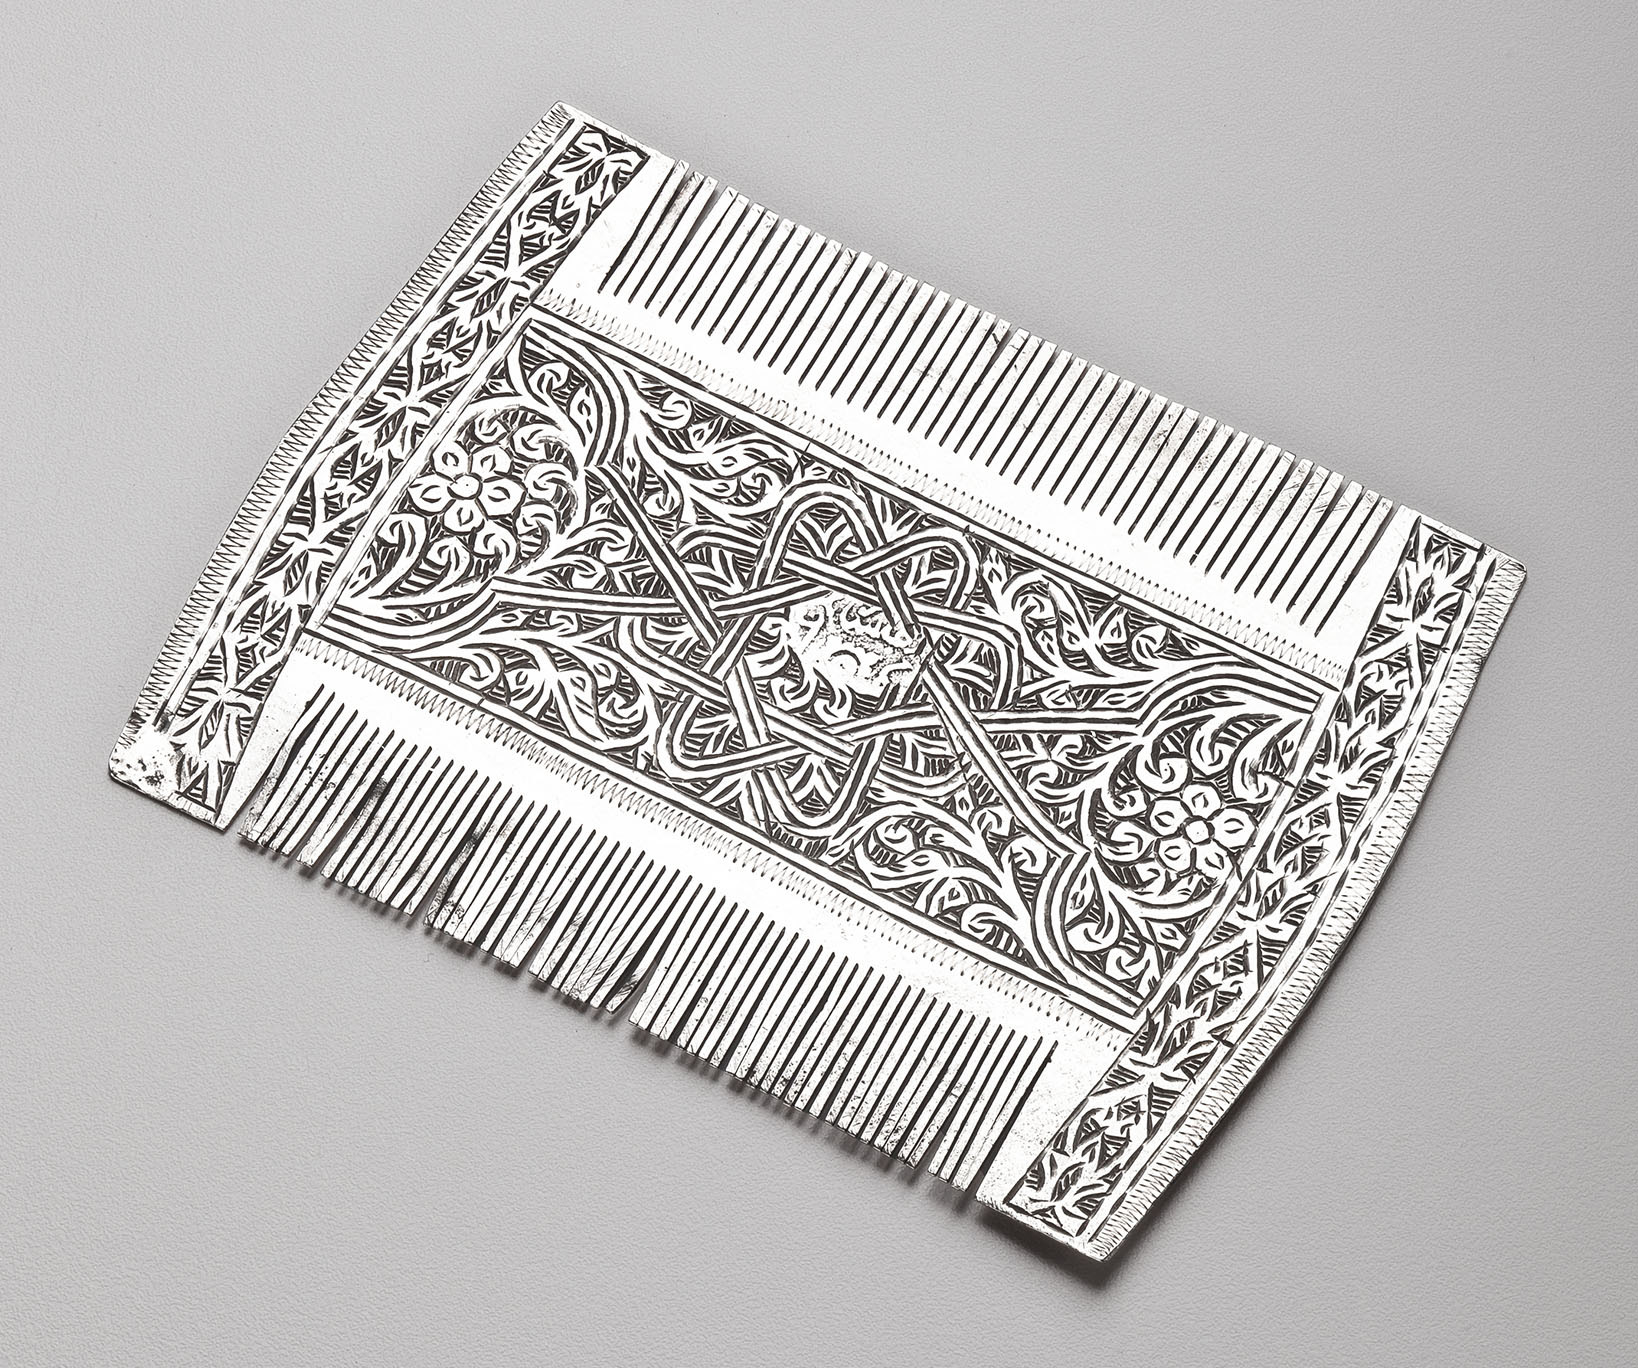 30.401_Unknown_-Comb-with-Eight-Pointed-Star,-Floral-and-Knot-Designs_950w